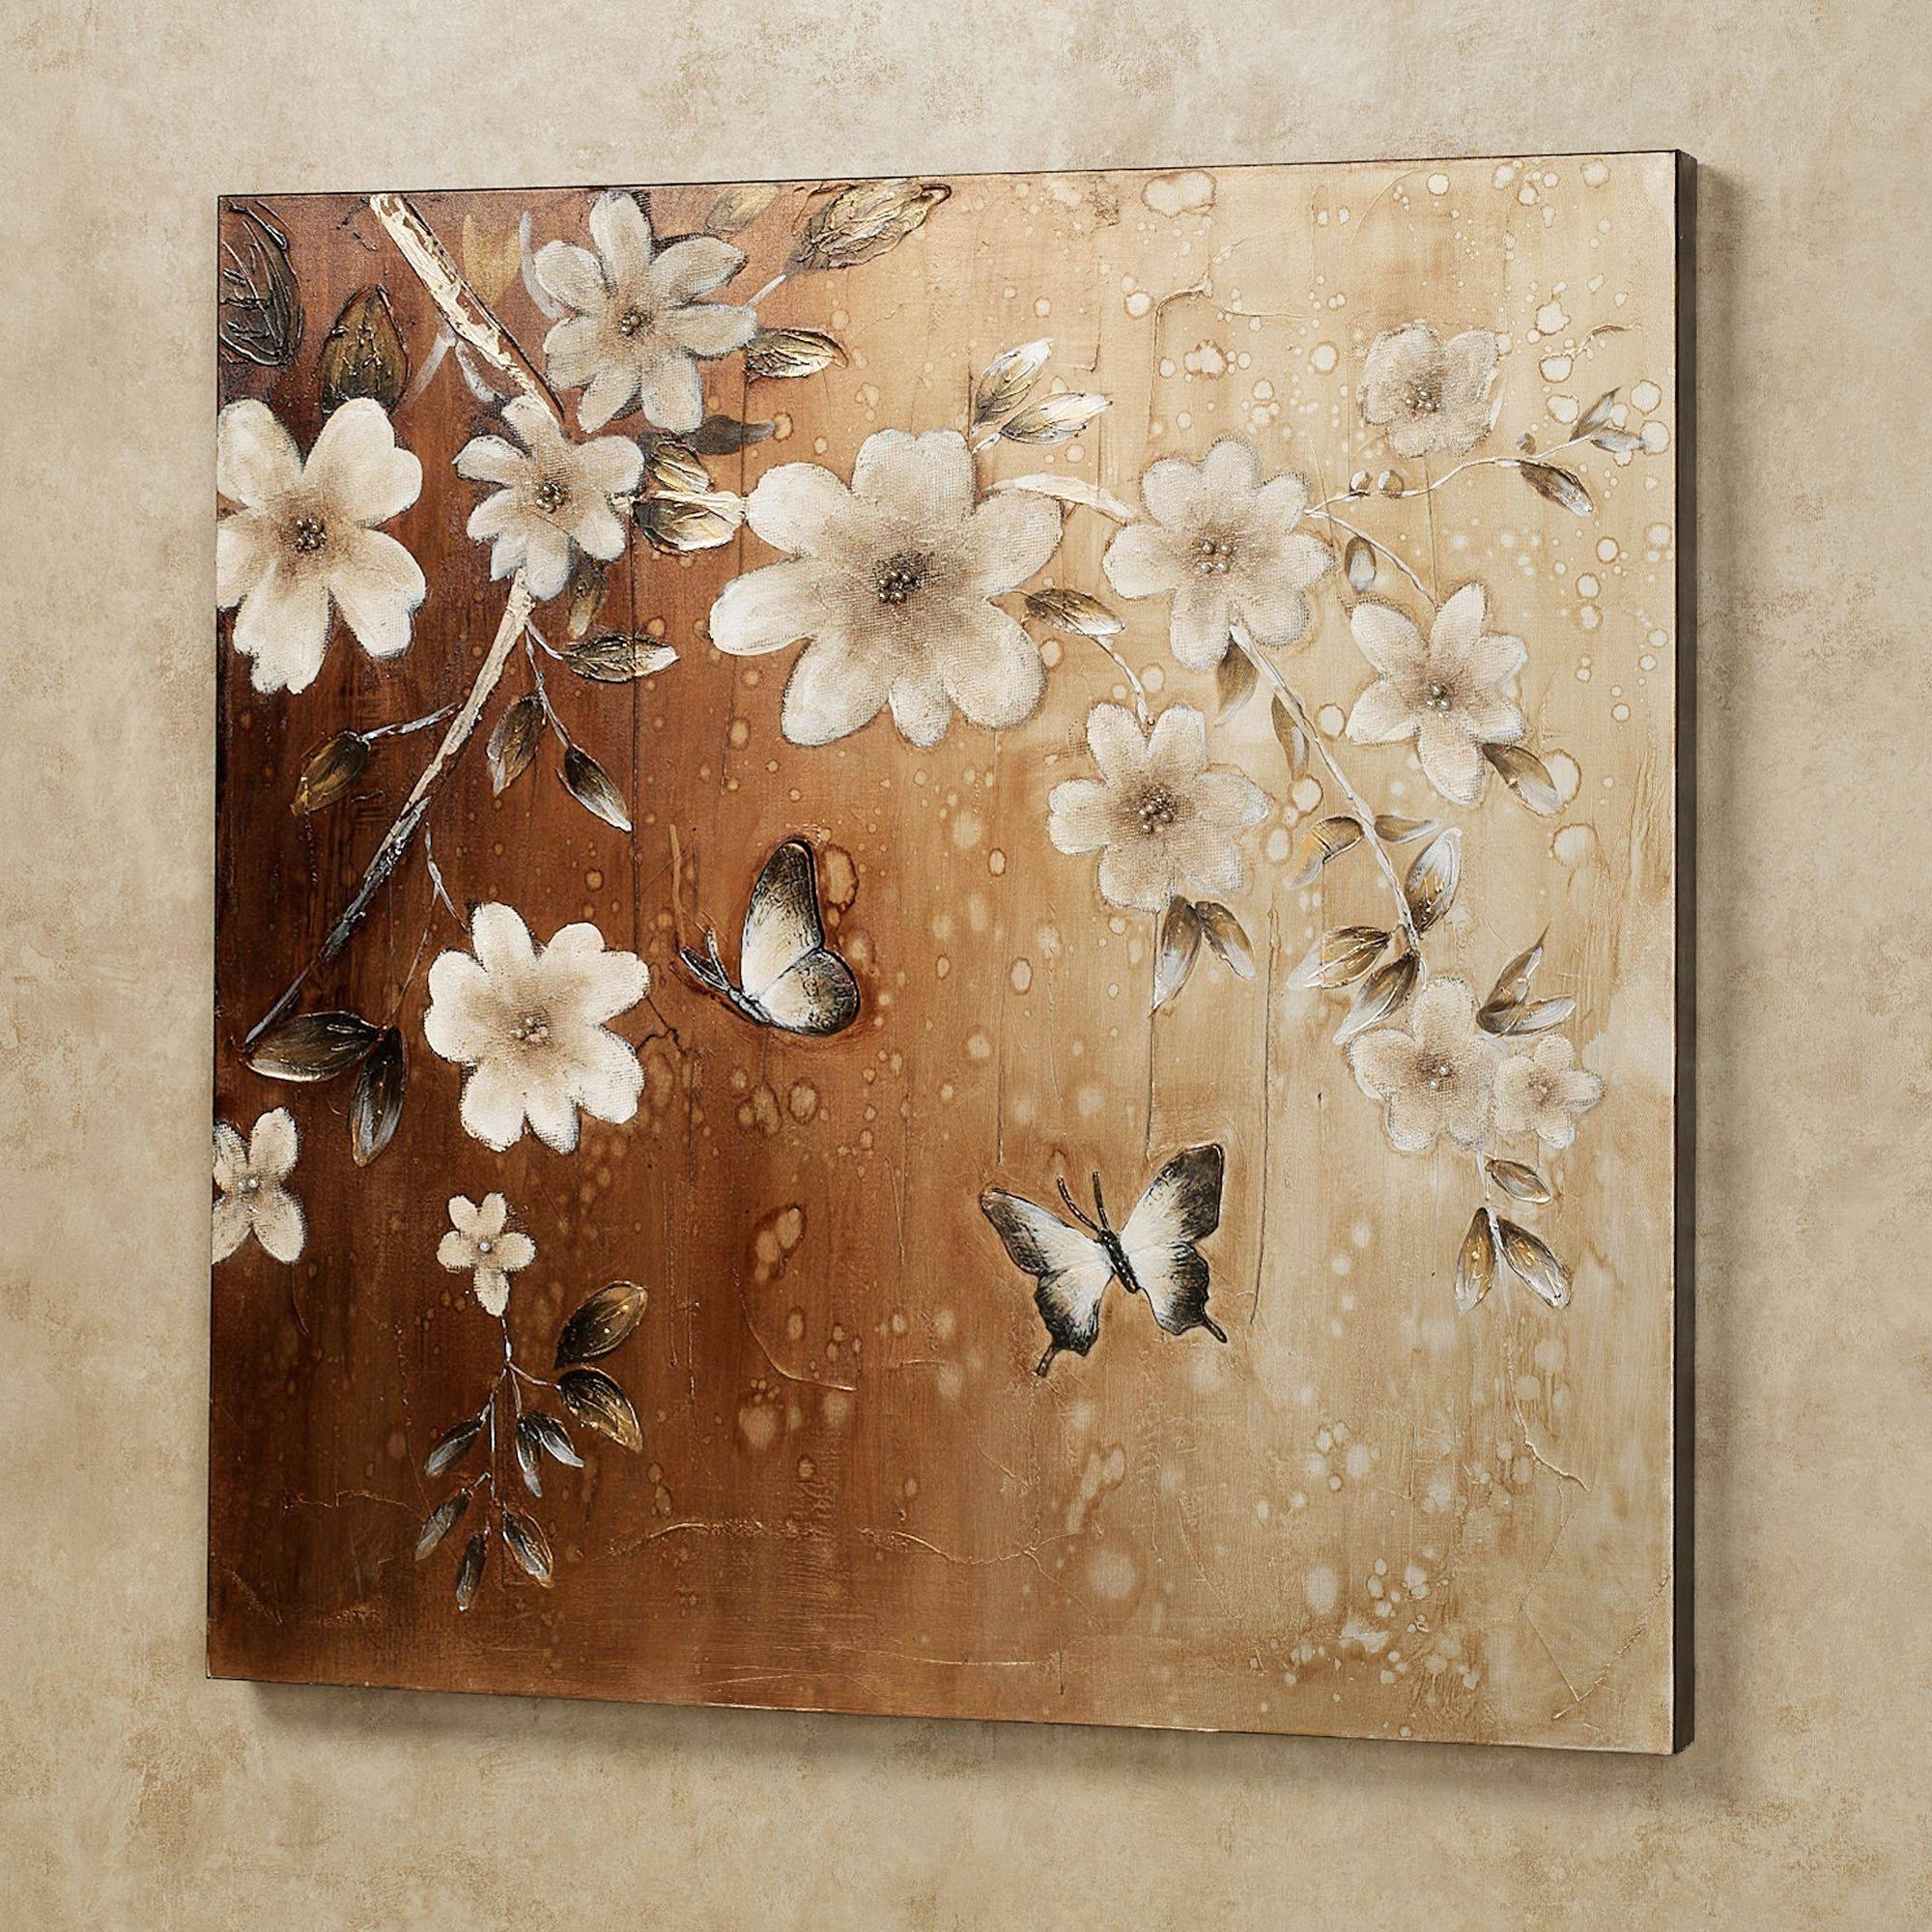 Midday Sun Butterfly Floral Canvas Wall Art Throughout Latest Flower Wall Art Canvas (View 13 of 20)